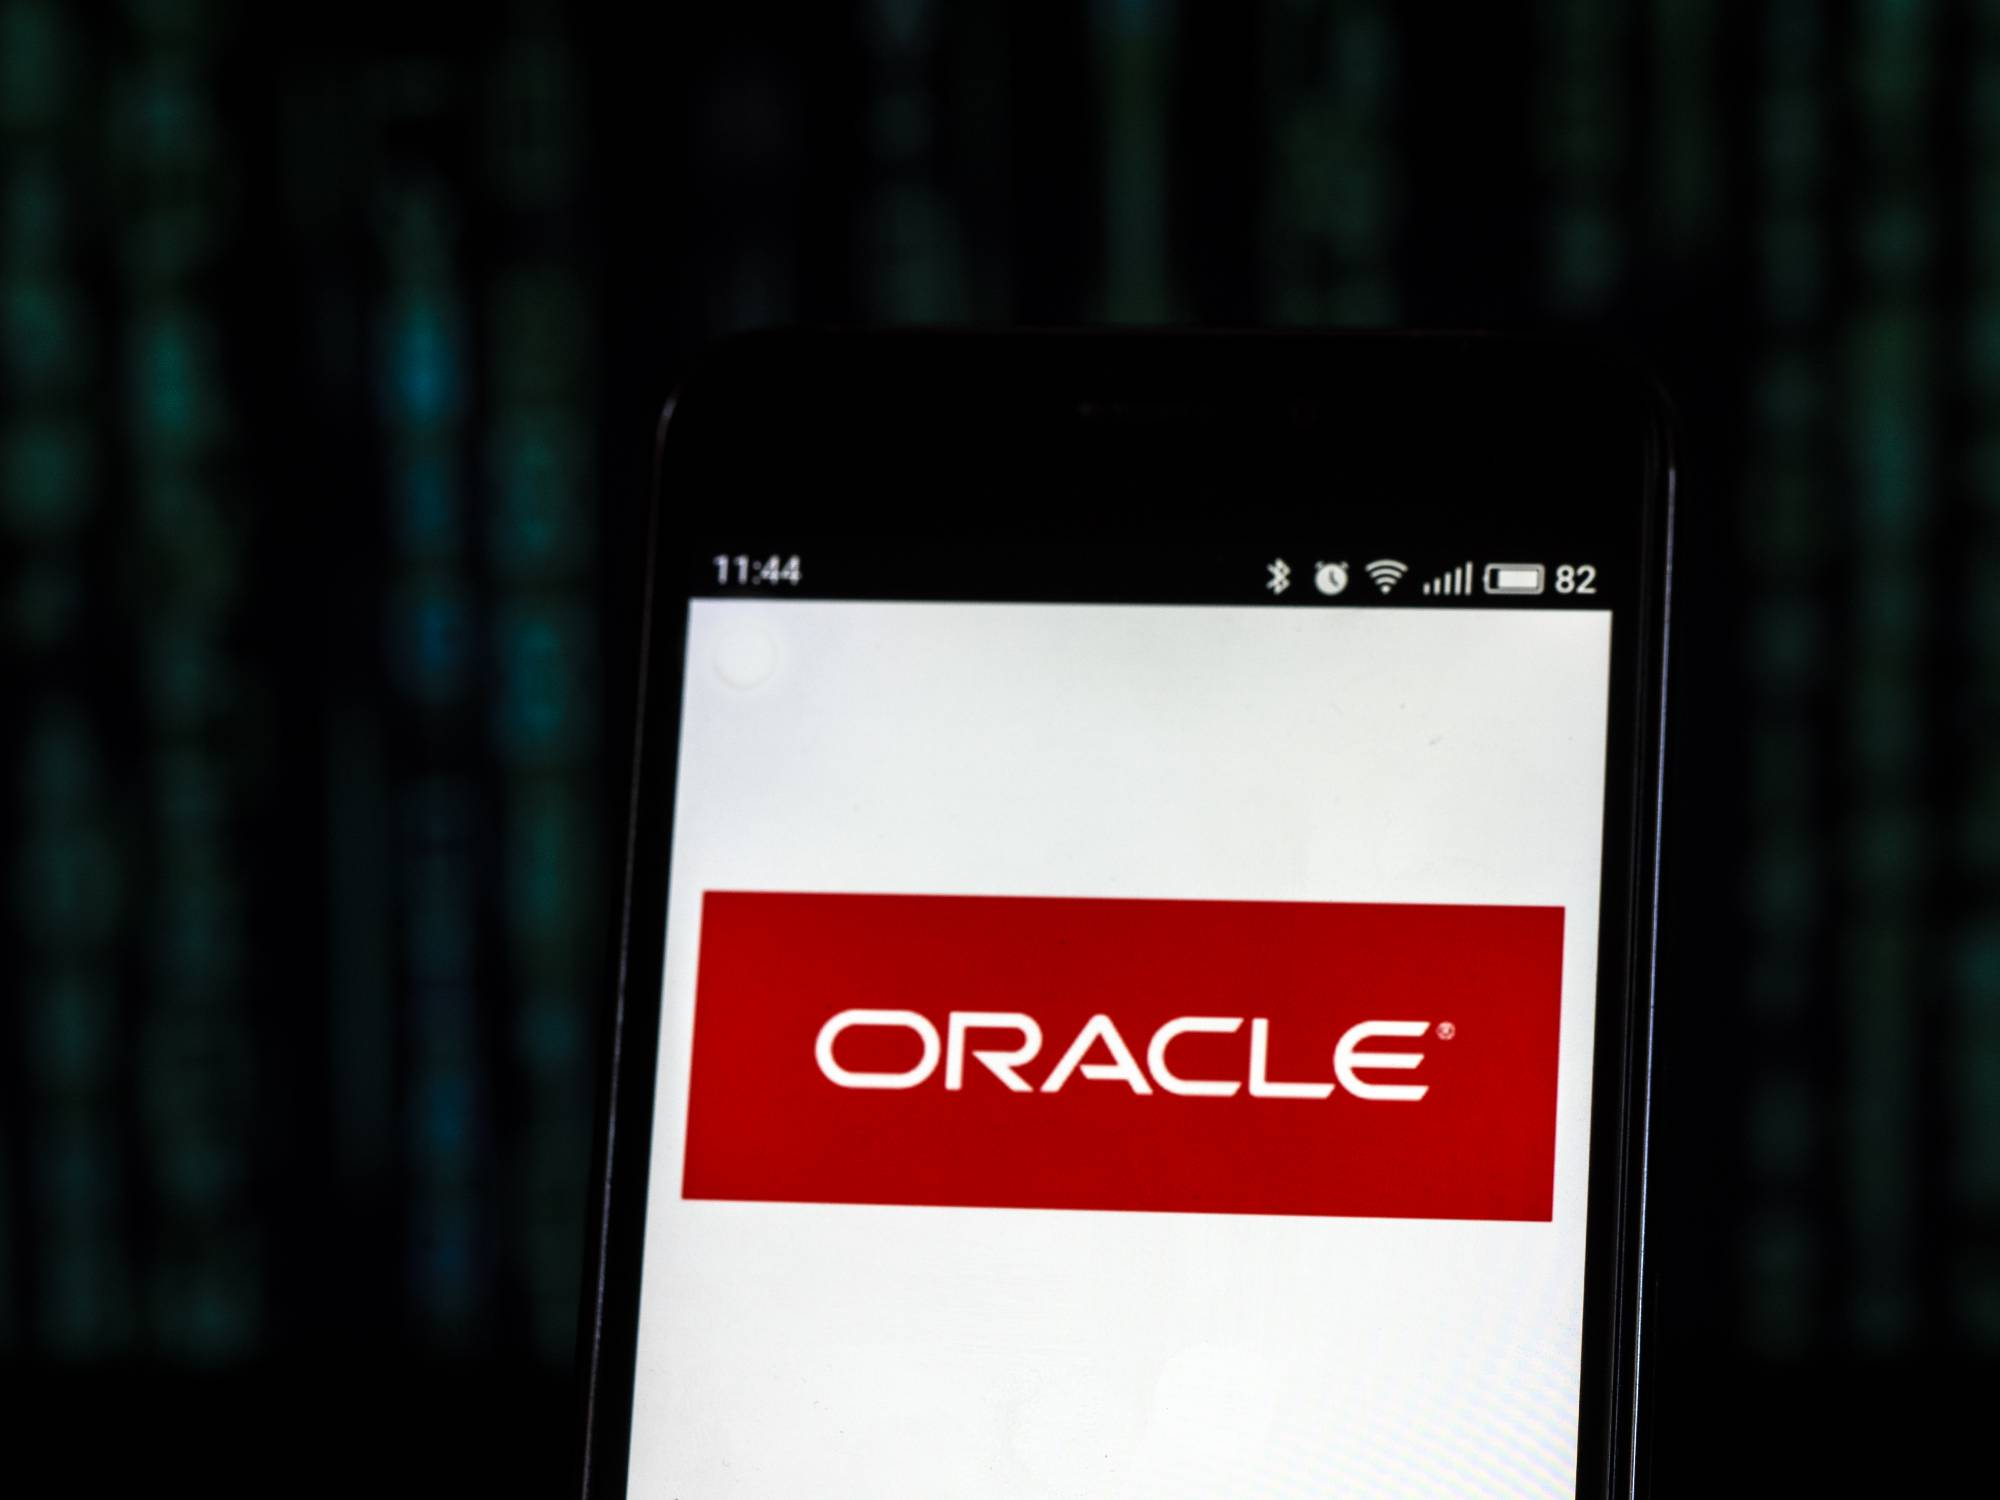 Oracle Corporation logo seen displayed on smart phone.